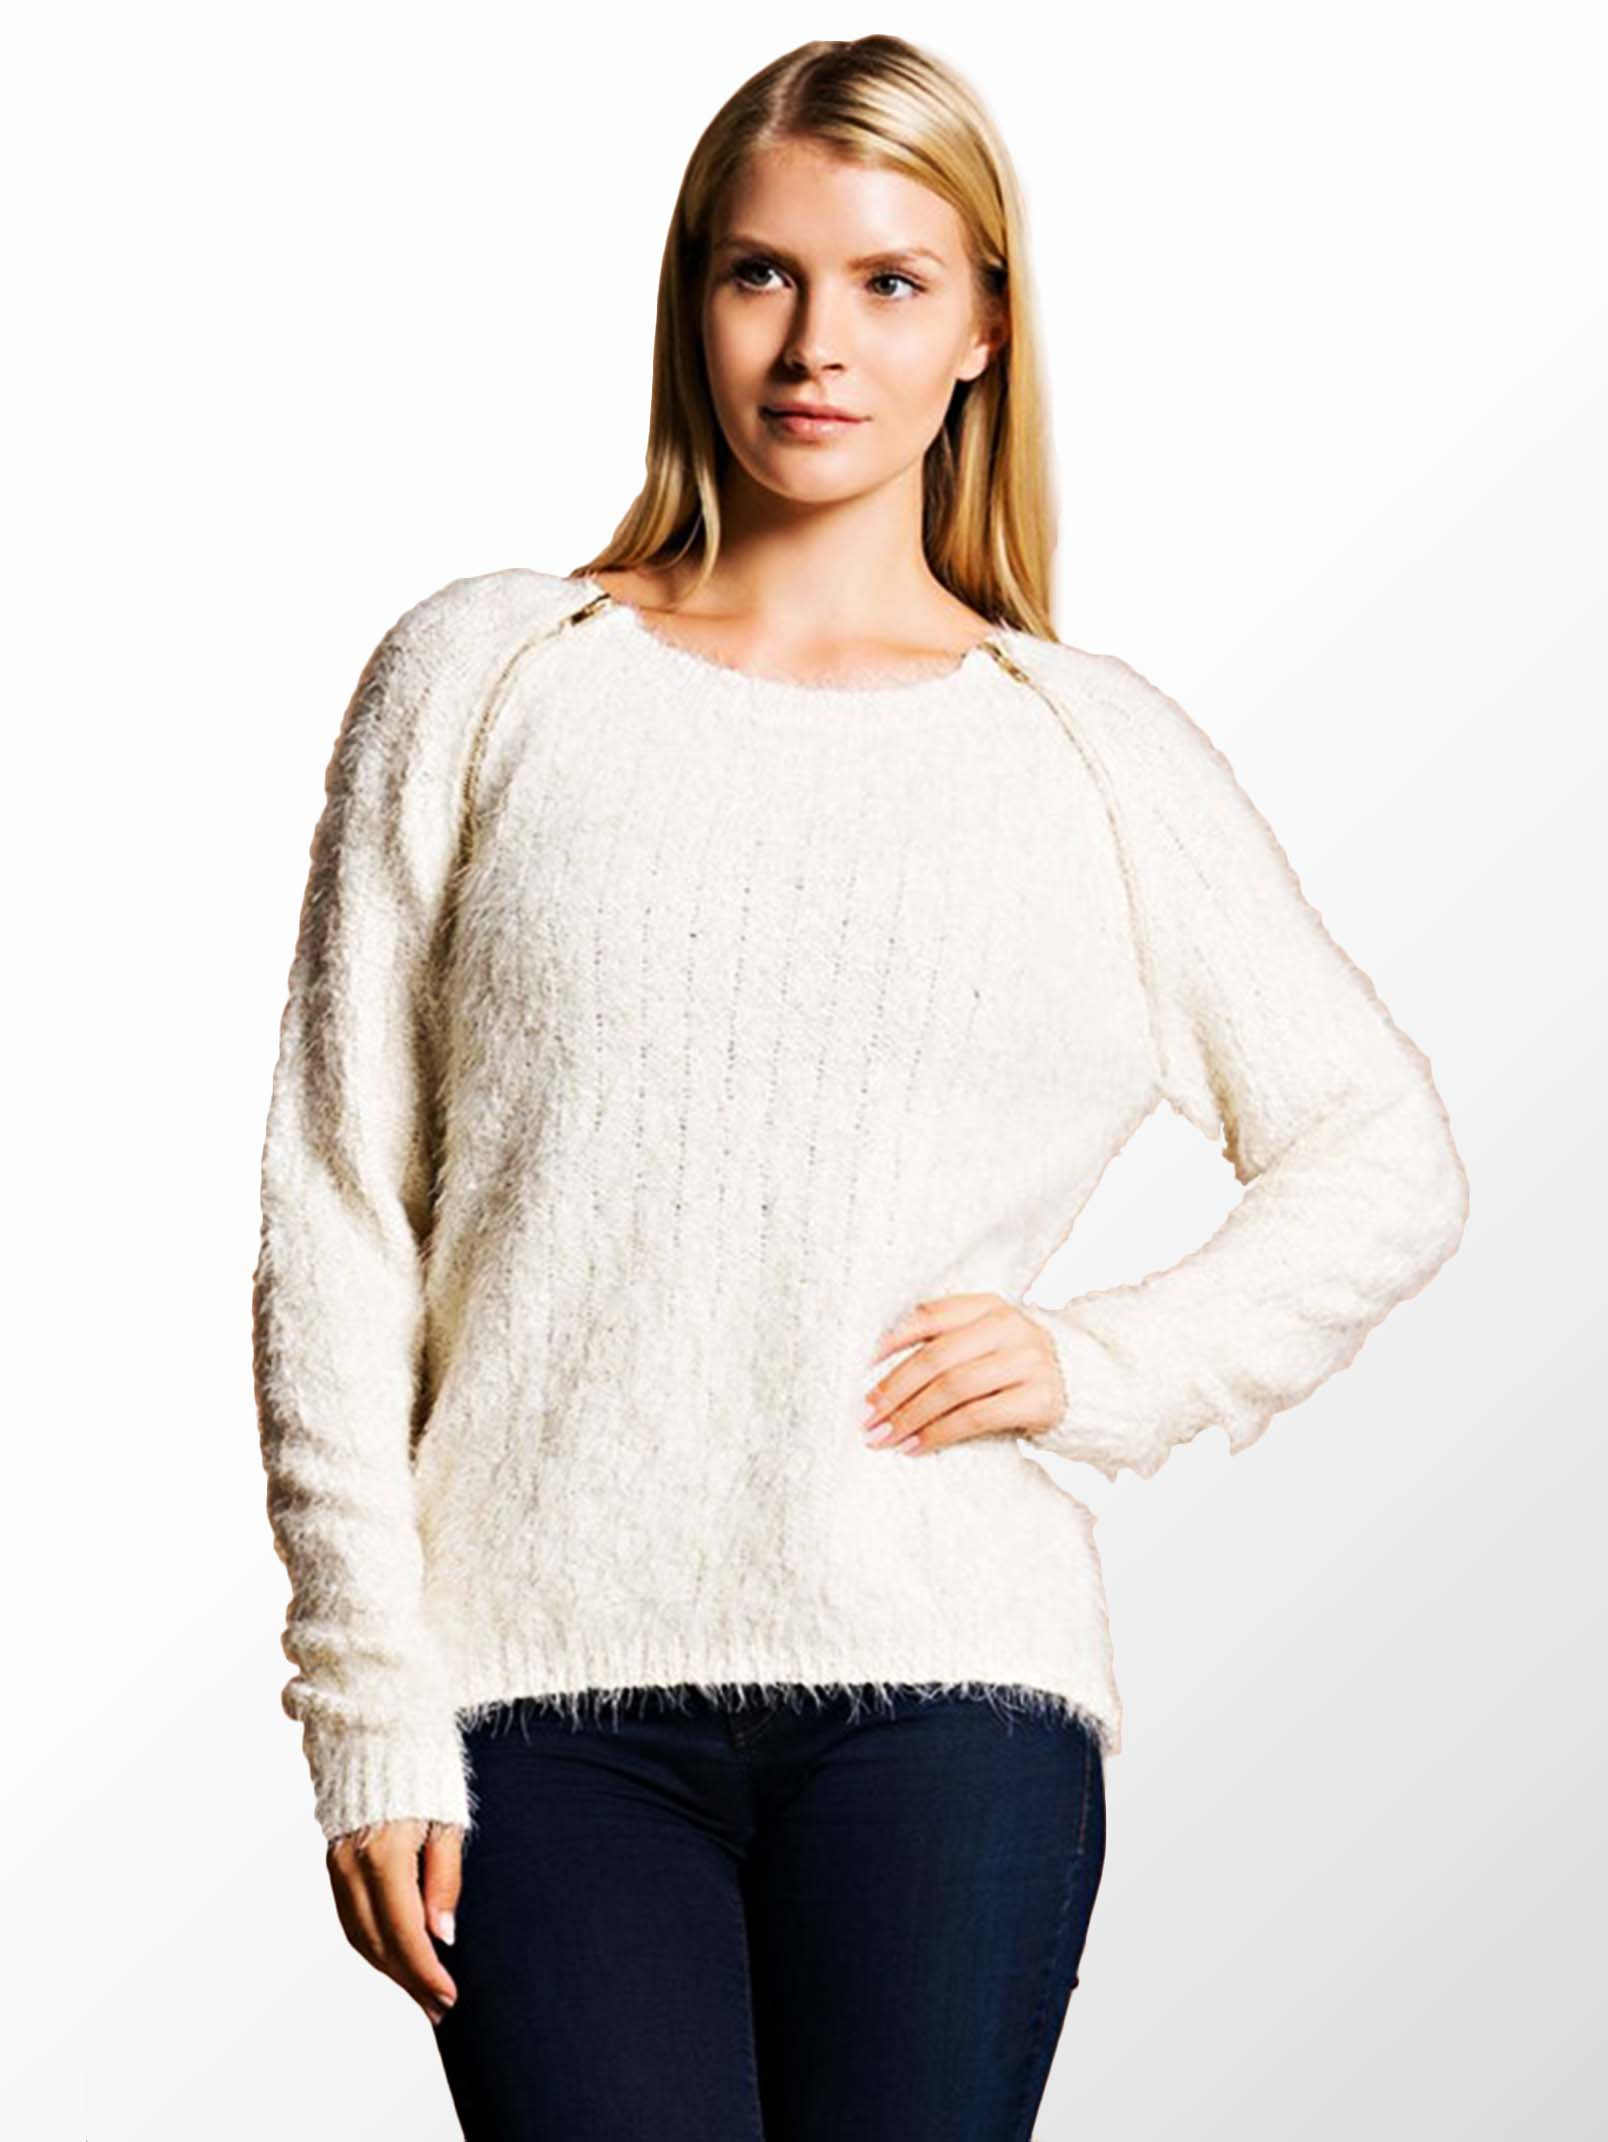 Shop women's sweaters, pullovers and cardigans from White House Black Market. Sweaters for every occasion. Free shipping for all WHBM rewards members.